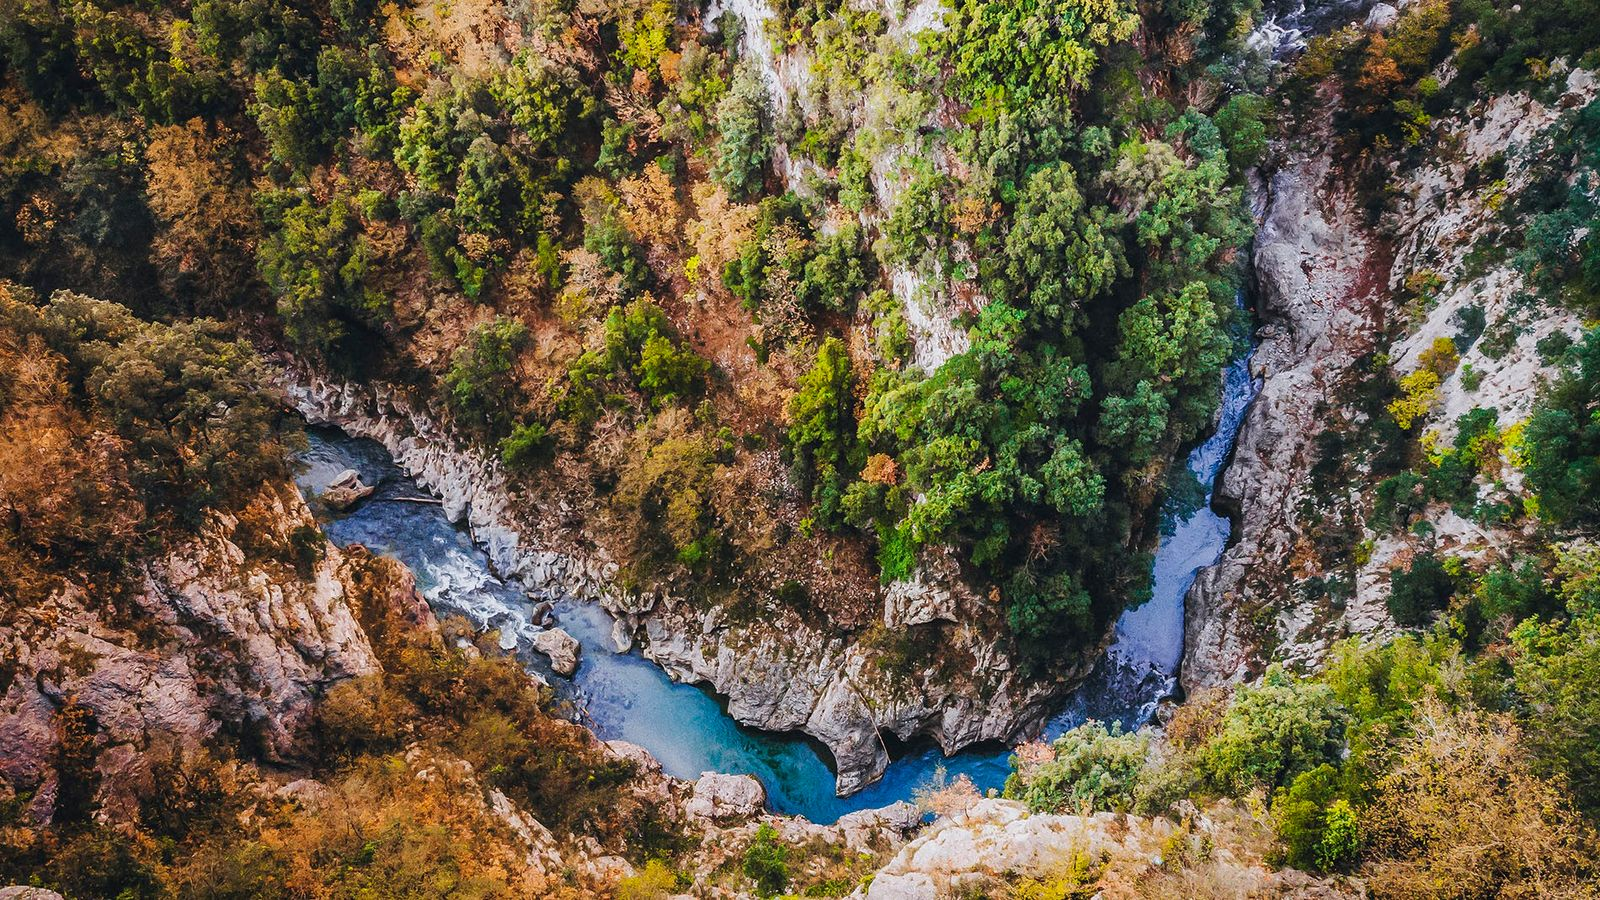 The Lao River is one of the greatest in Europe, and Antonio spent his much of ...